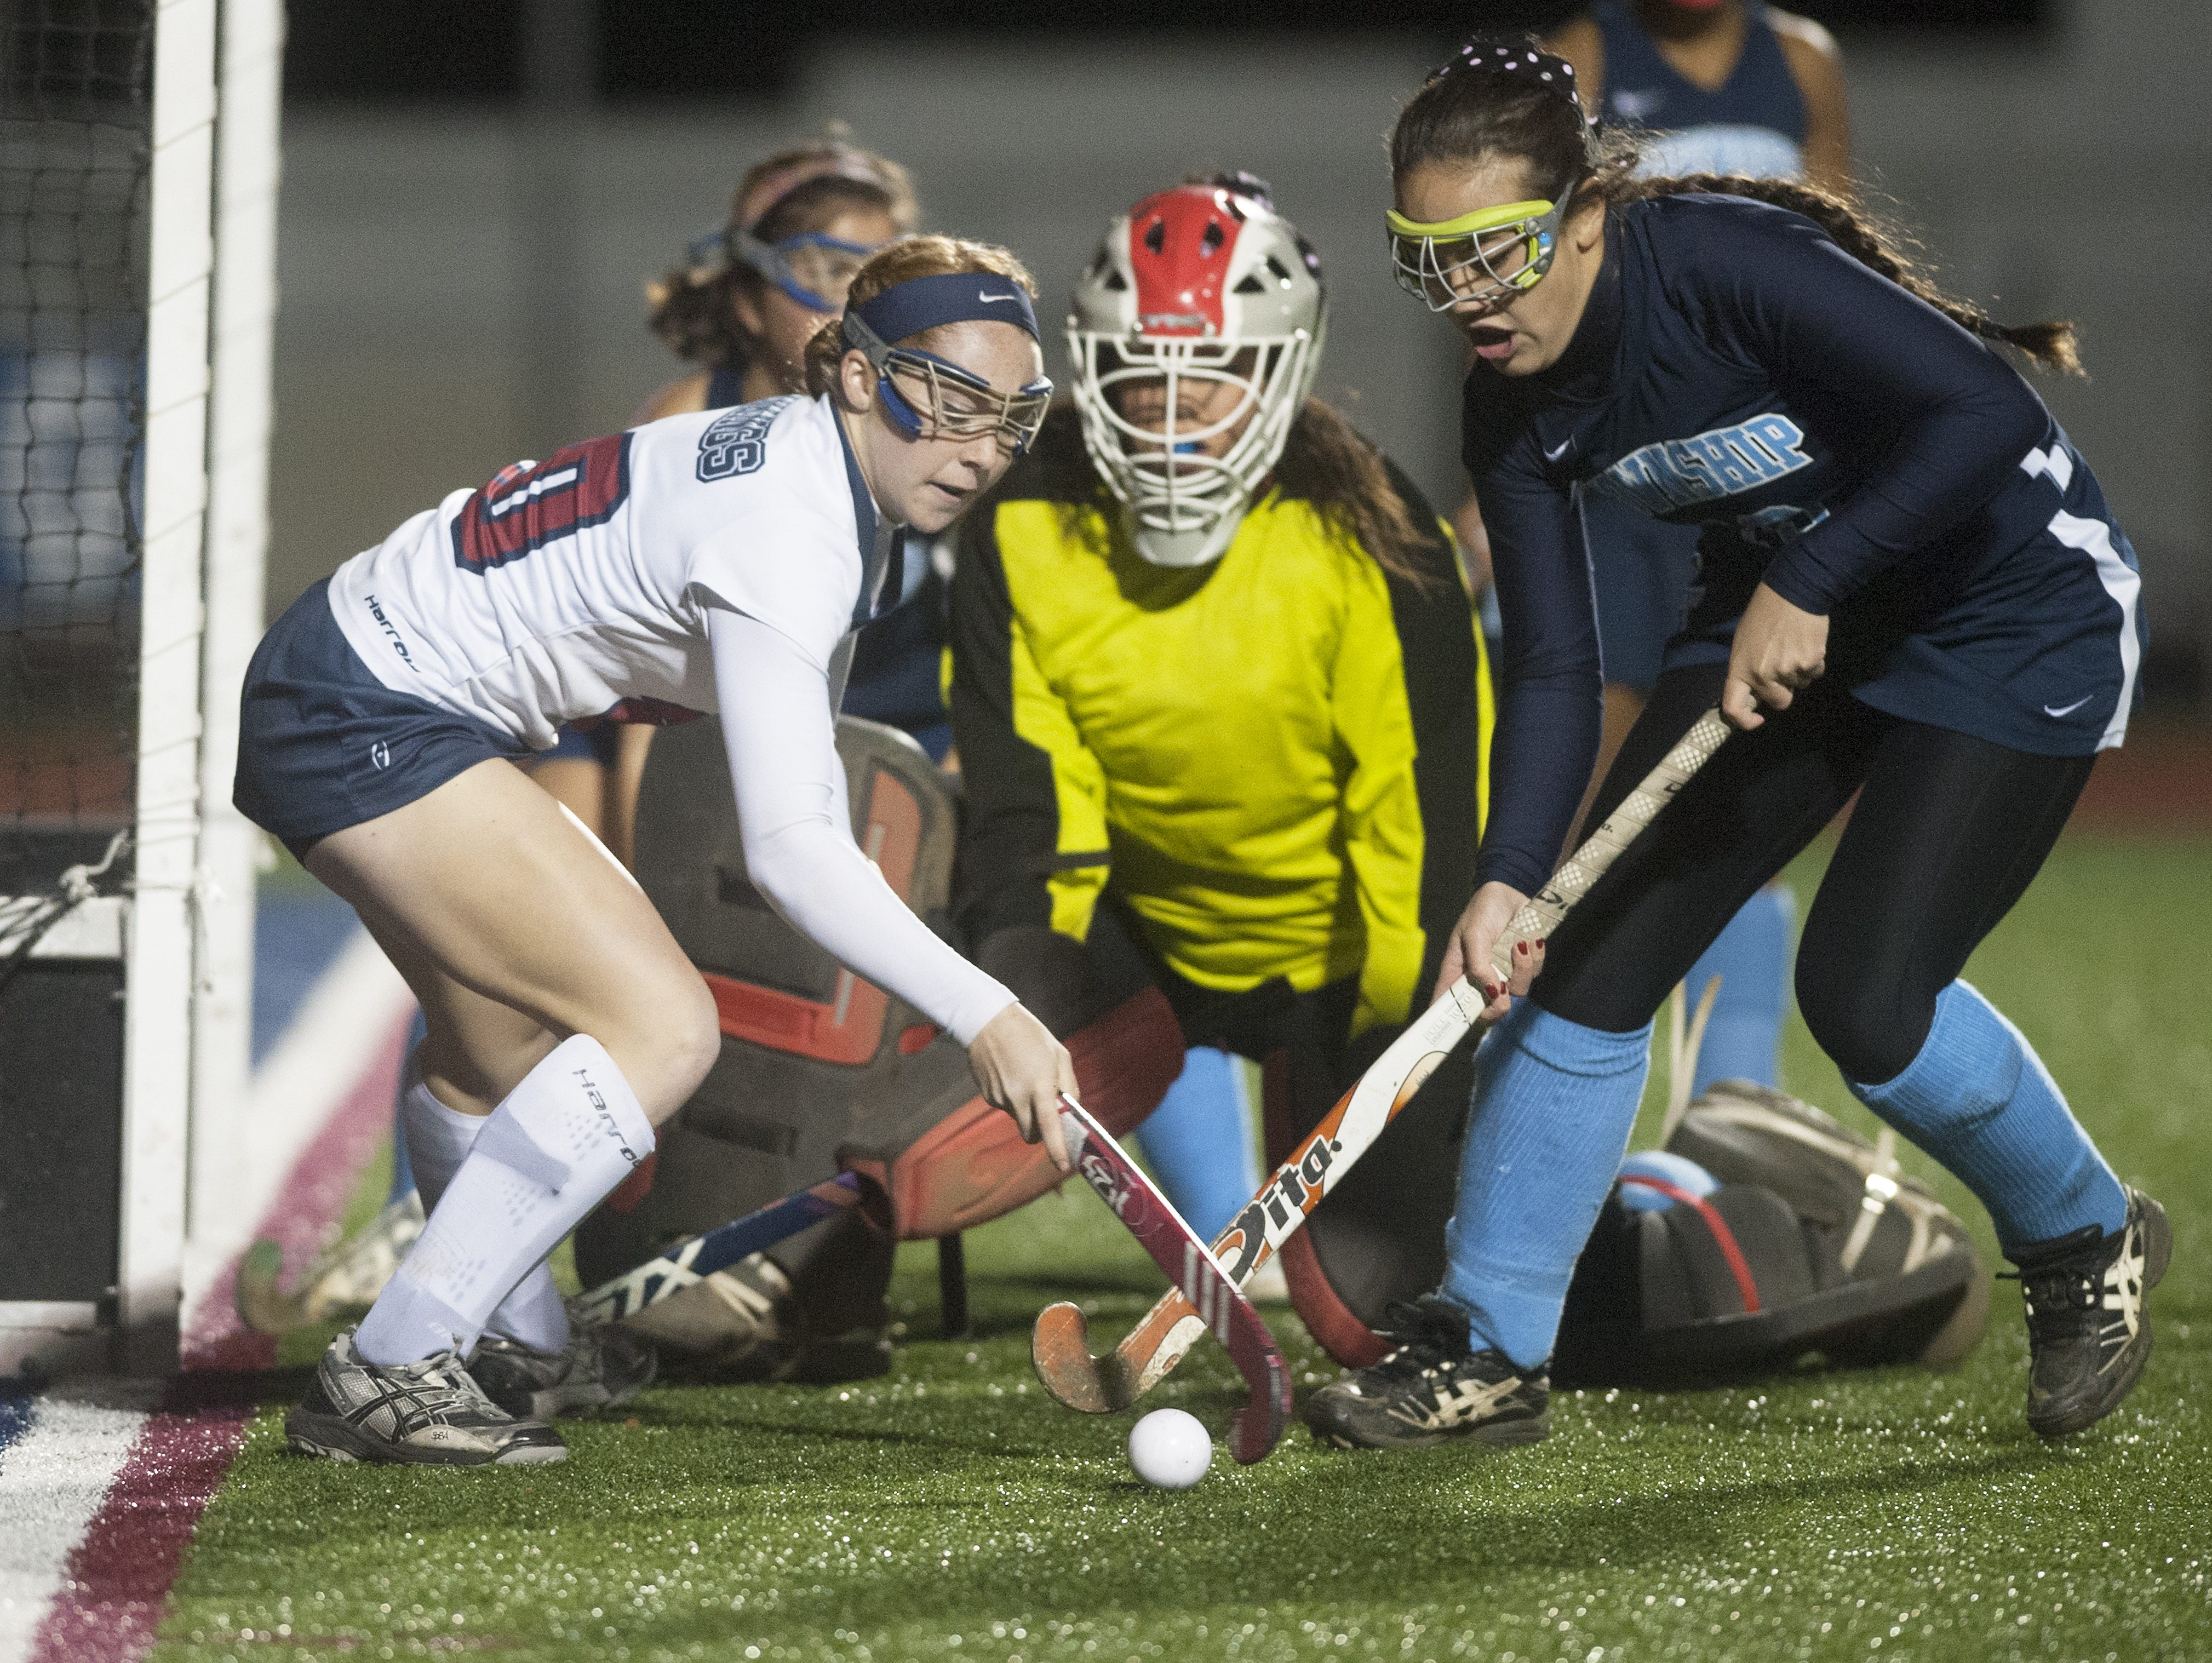 Eastern's Nikki Santore leads South Jersey in goals scores (40) and assists (27).